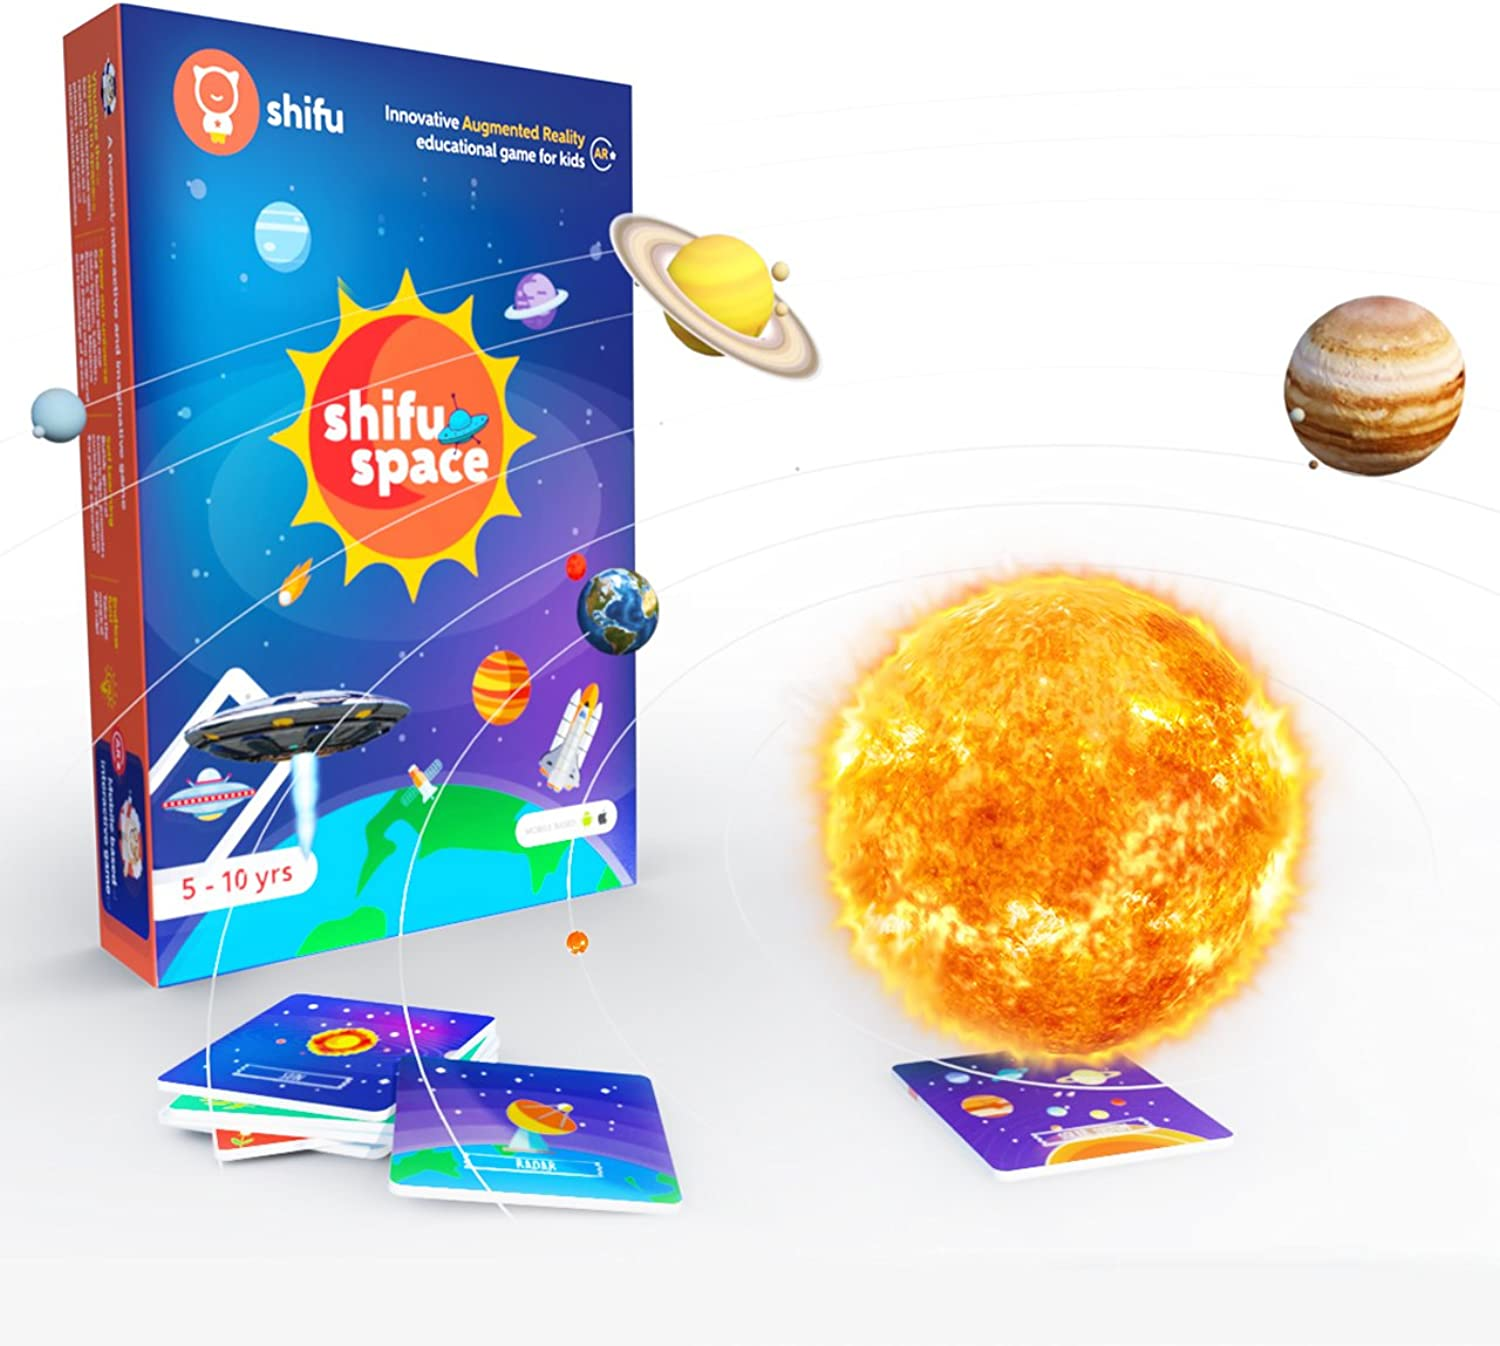 Shifu Space  60 Space Objects in 4D  Augmented Reality Educational Game (Gift for Kids  Boys & Girls Age 510 Years  Fun & STEM Learning)  Solar System, Satellites, Missions & Key People